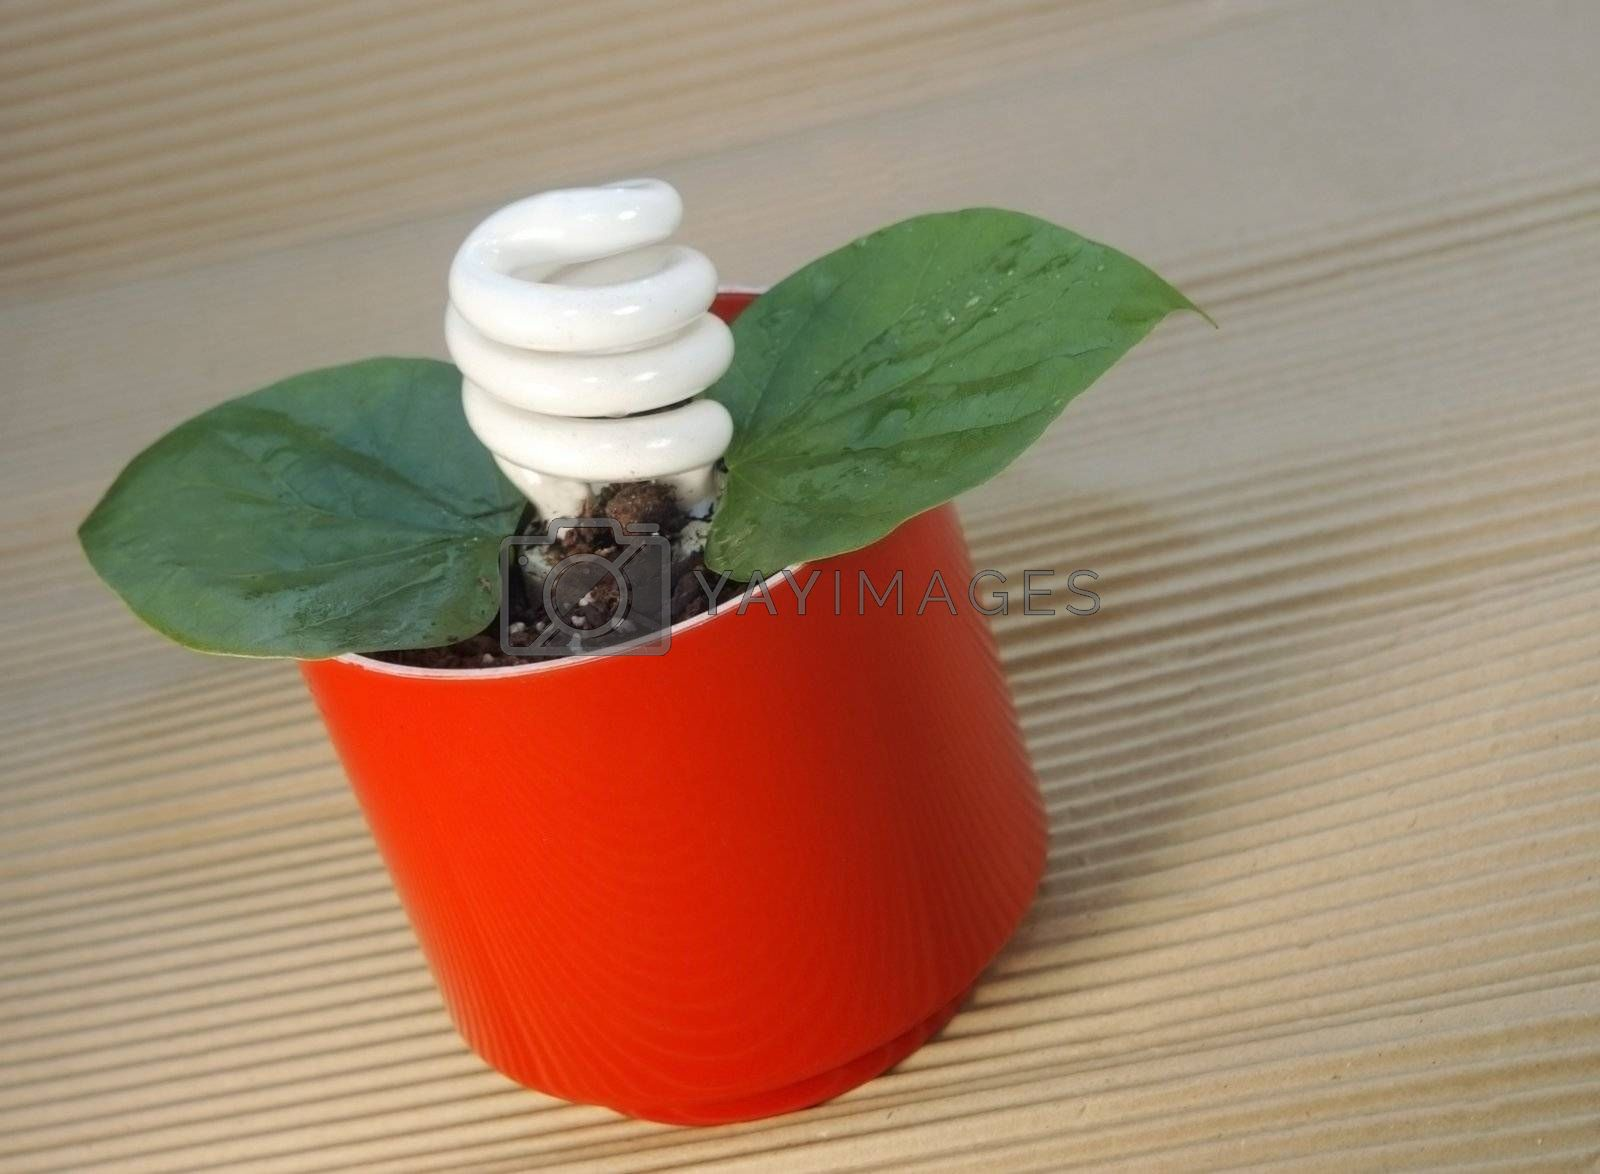 Energy-saving lightbulb blooms from this potted plant,  depicting the concept of environmentally conscious use of energy.